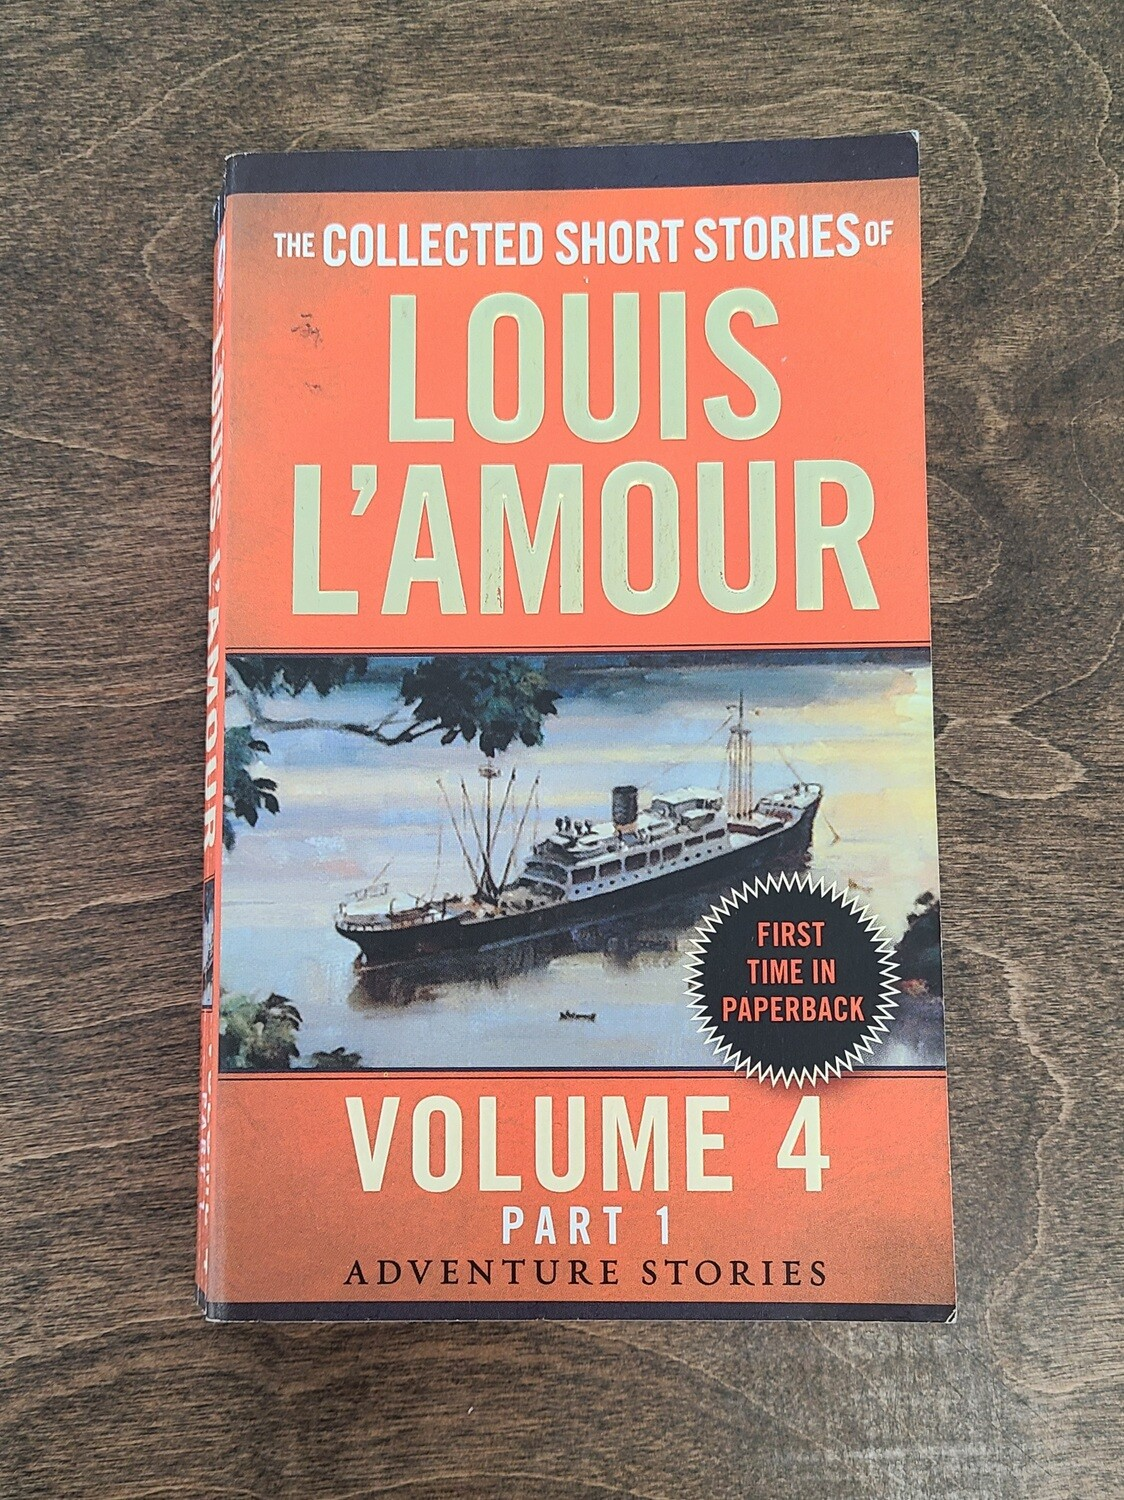 The Collected Short Stories of Louis L'Amour: Volume 4 Part 1 by Louis L'Amour